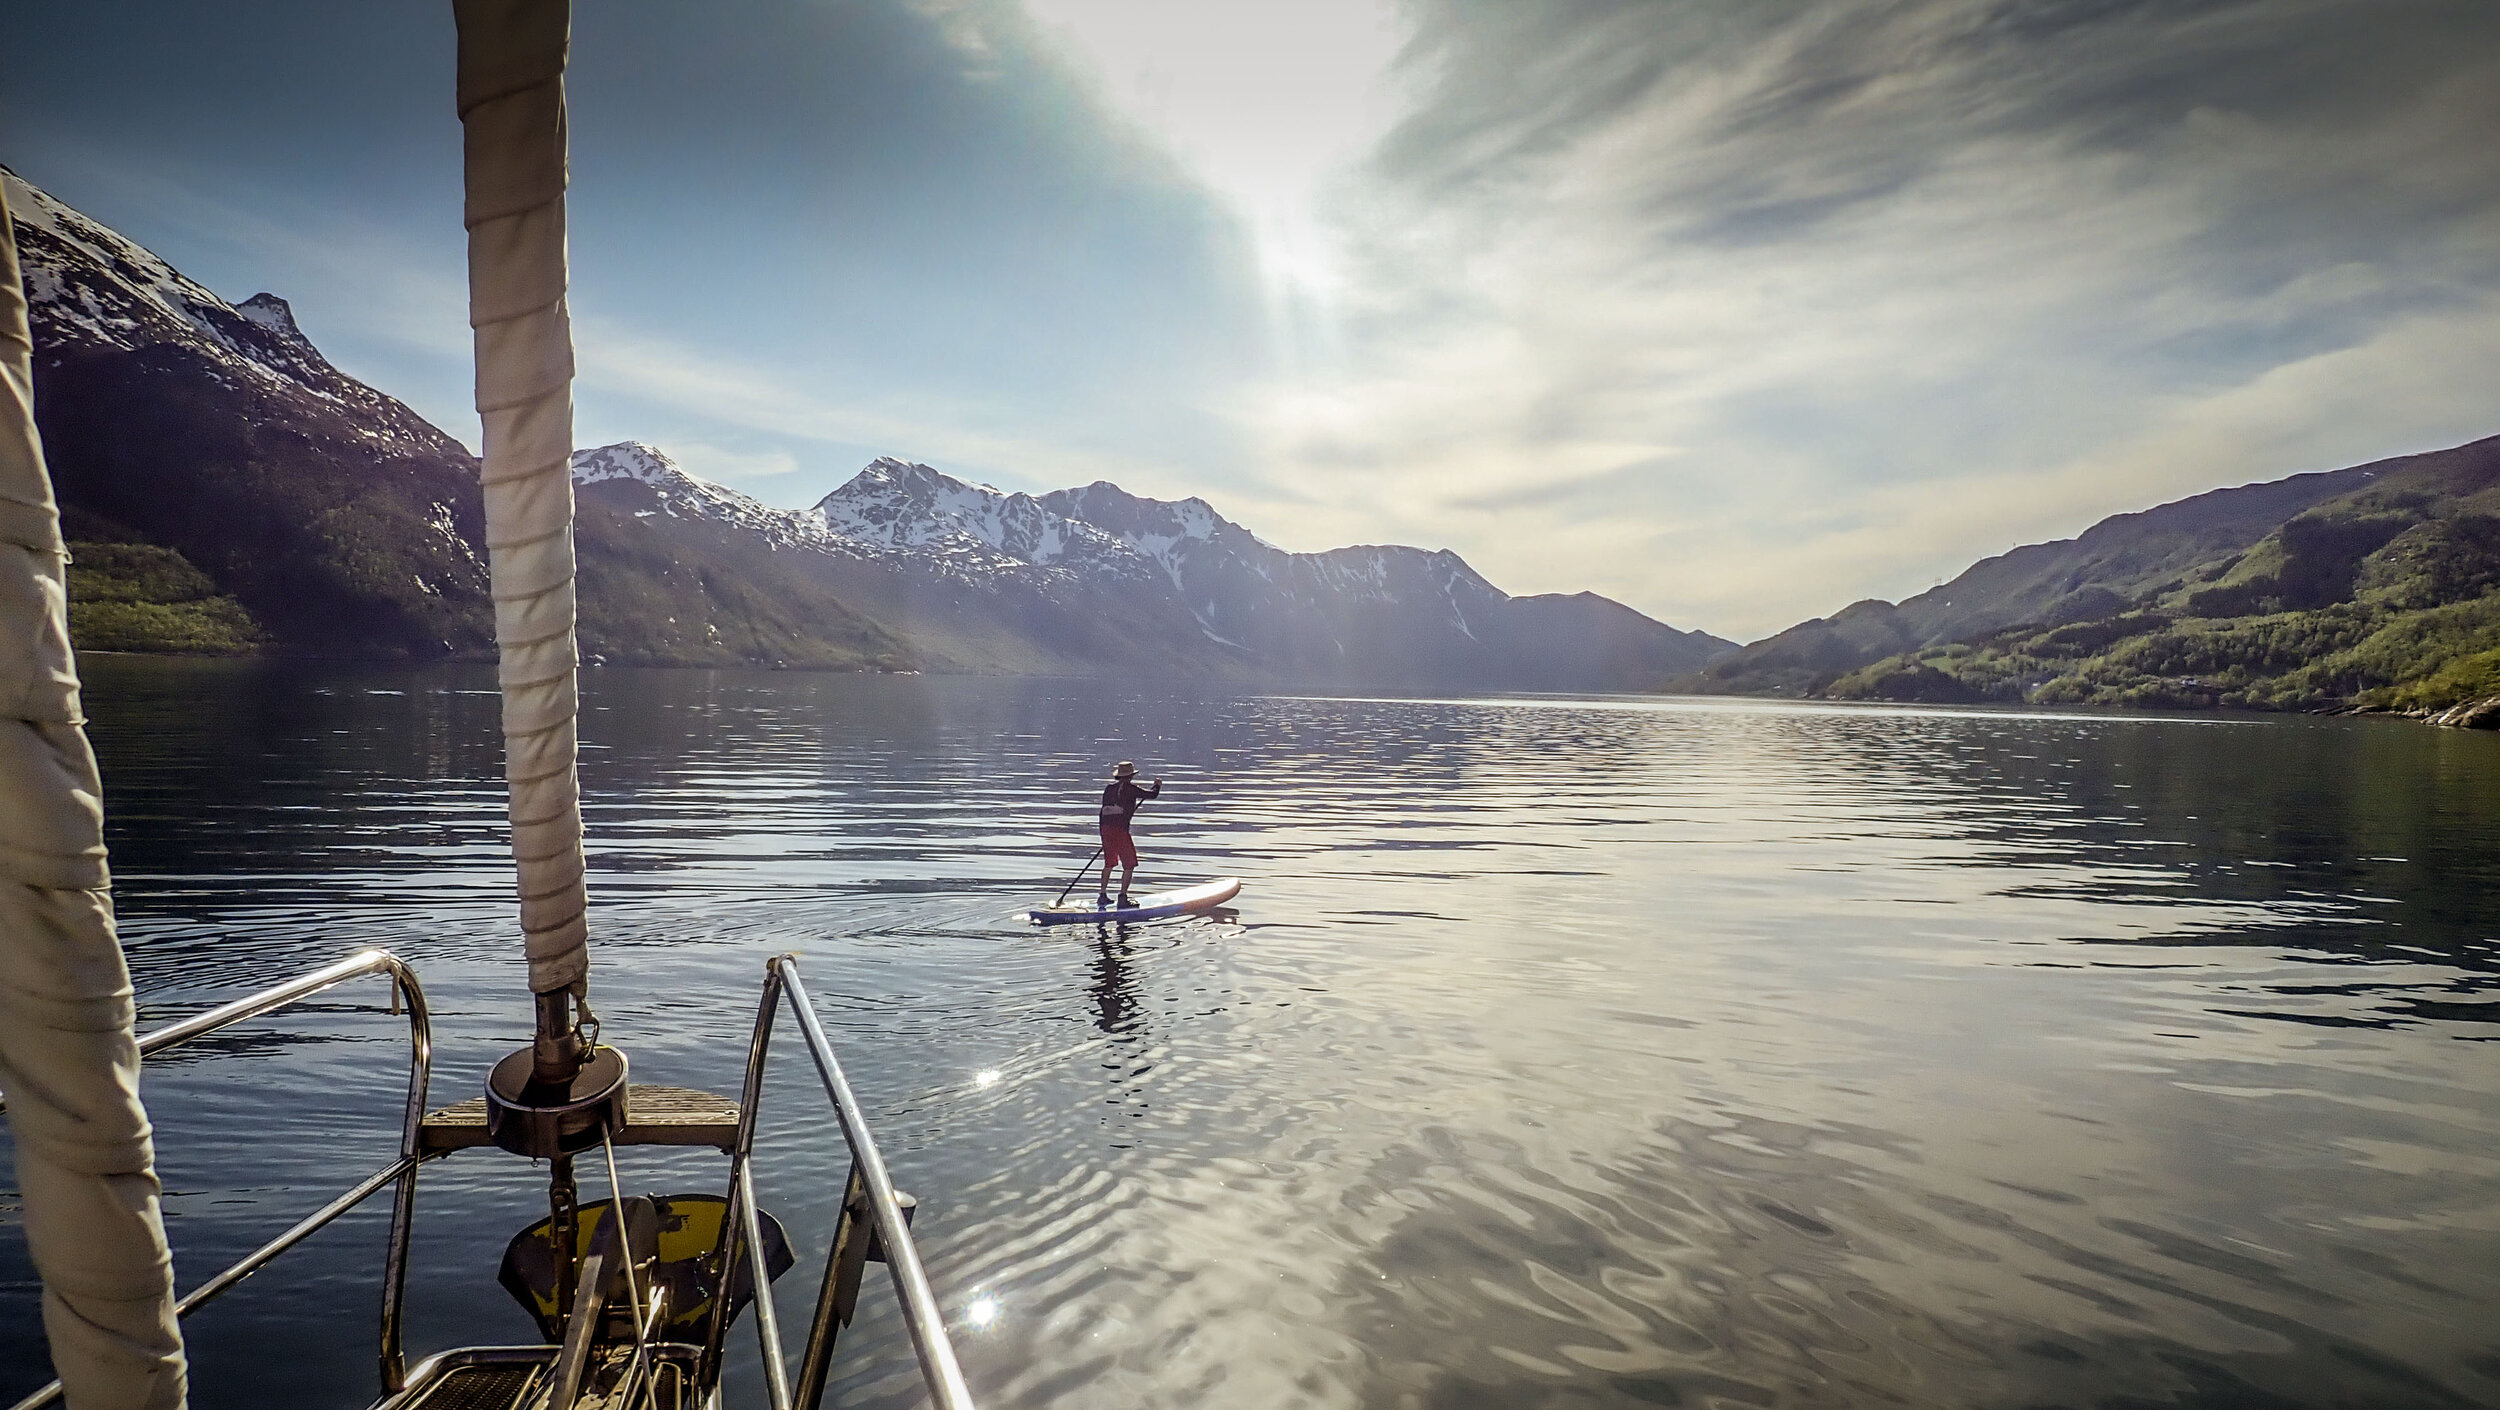 Paddle board adventure by sailboat - we love it! :)